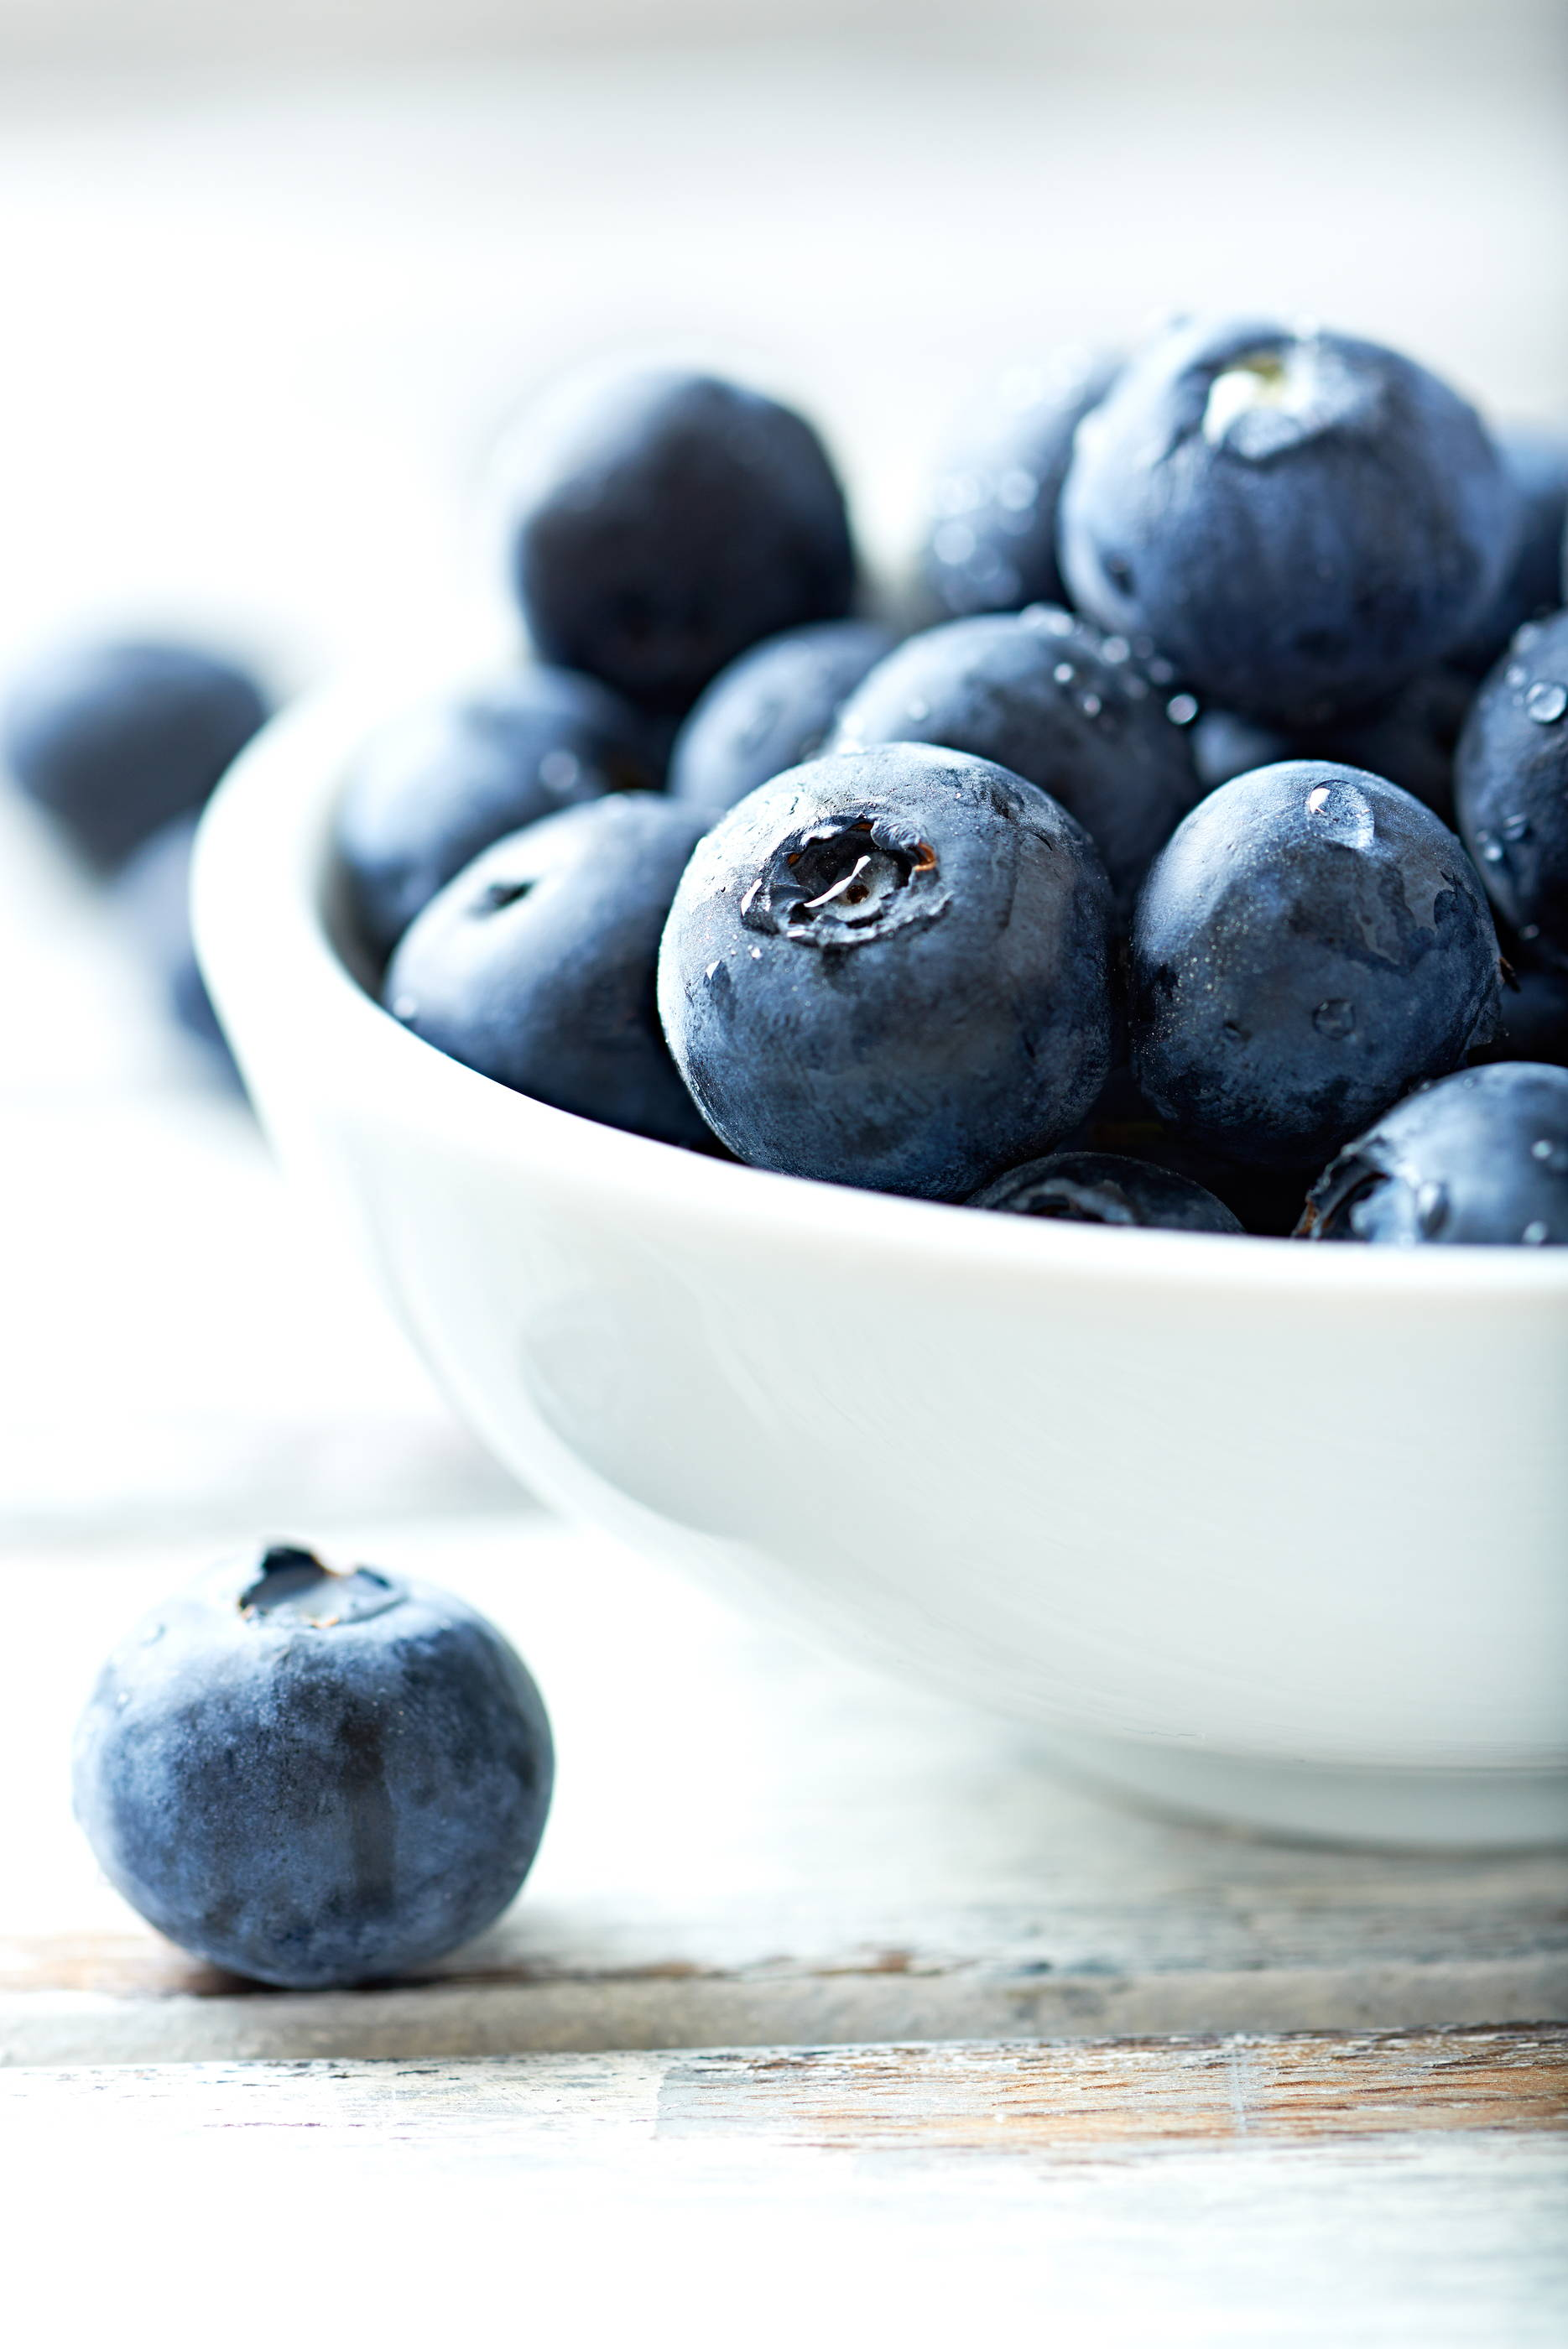 Consuming antioxidants such as blueberries provides protection to the cells